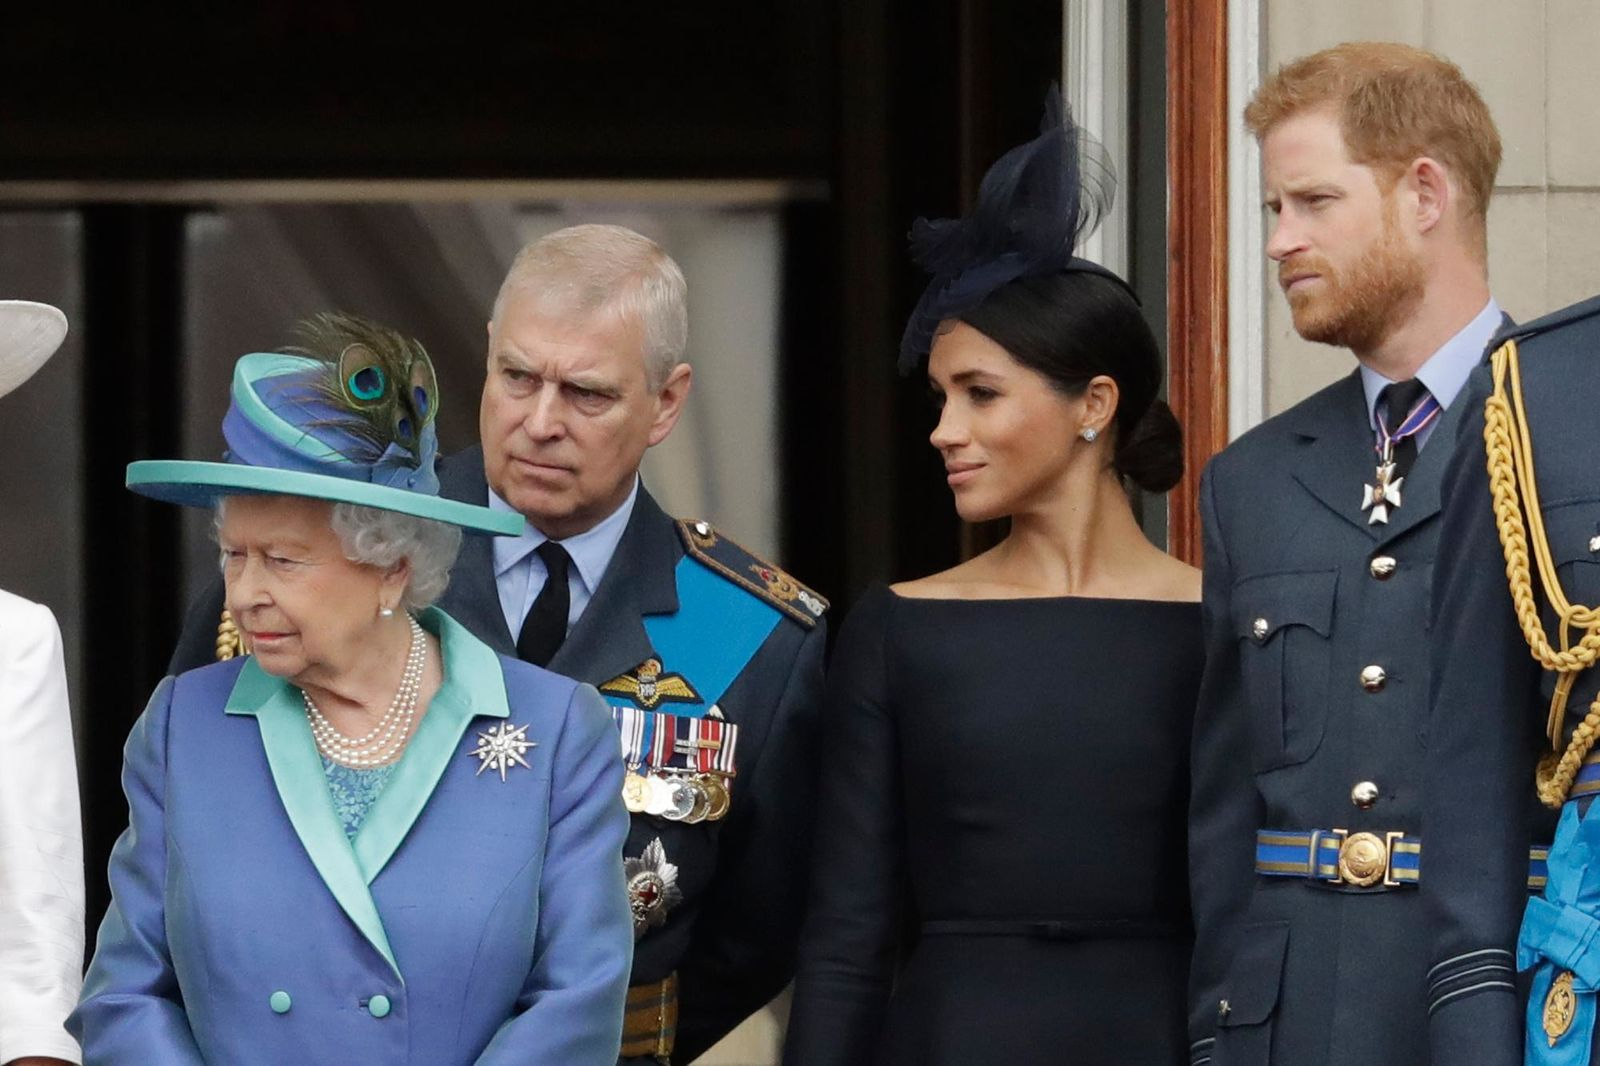 "FILE - In this Tuesday, July 10, 2018 file photo Britain's Queen Elizabeth II, Prince Andrew, Meghan the Duchess of Sussex and Prince Harry stand on a balcony to watch a flypast of Royal Air Force aircraft pass over Buckingham Palace in London. As part of a surprise announcement distancing themselves from the British royal family, Prince Harry and his wife Meghan declared they will ""work to become financially independent"" _ a move that has not been clearly spelled out and could be fraught with obstacles. (AP Photo/Matt Dunham, File)"